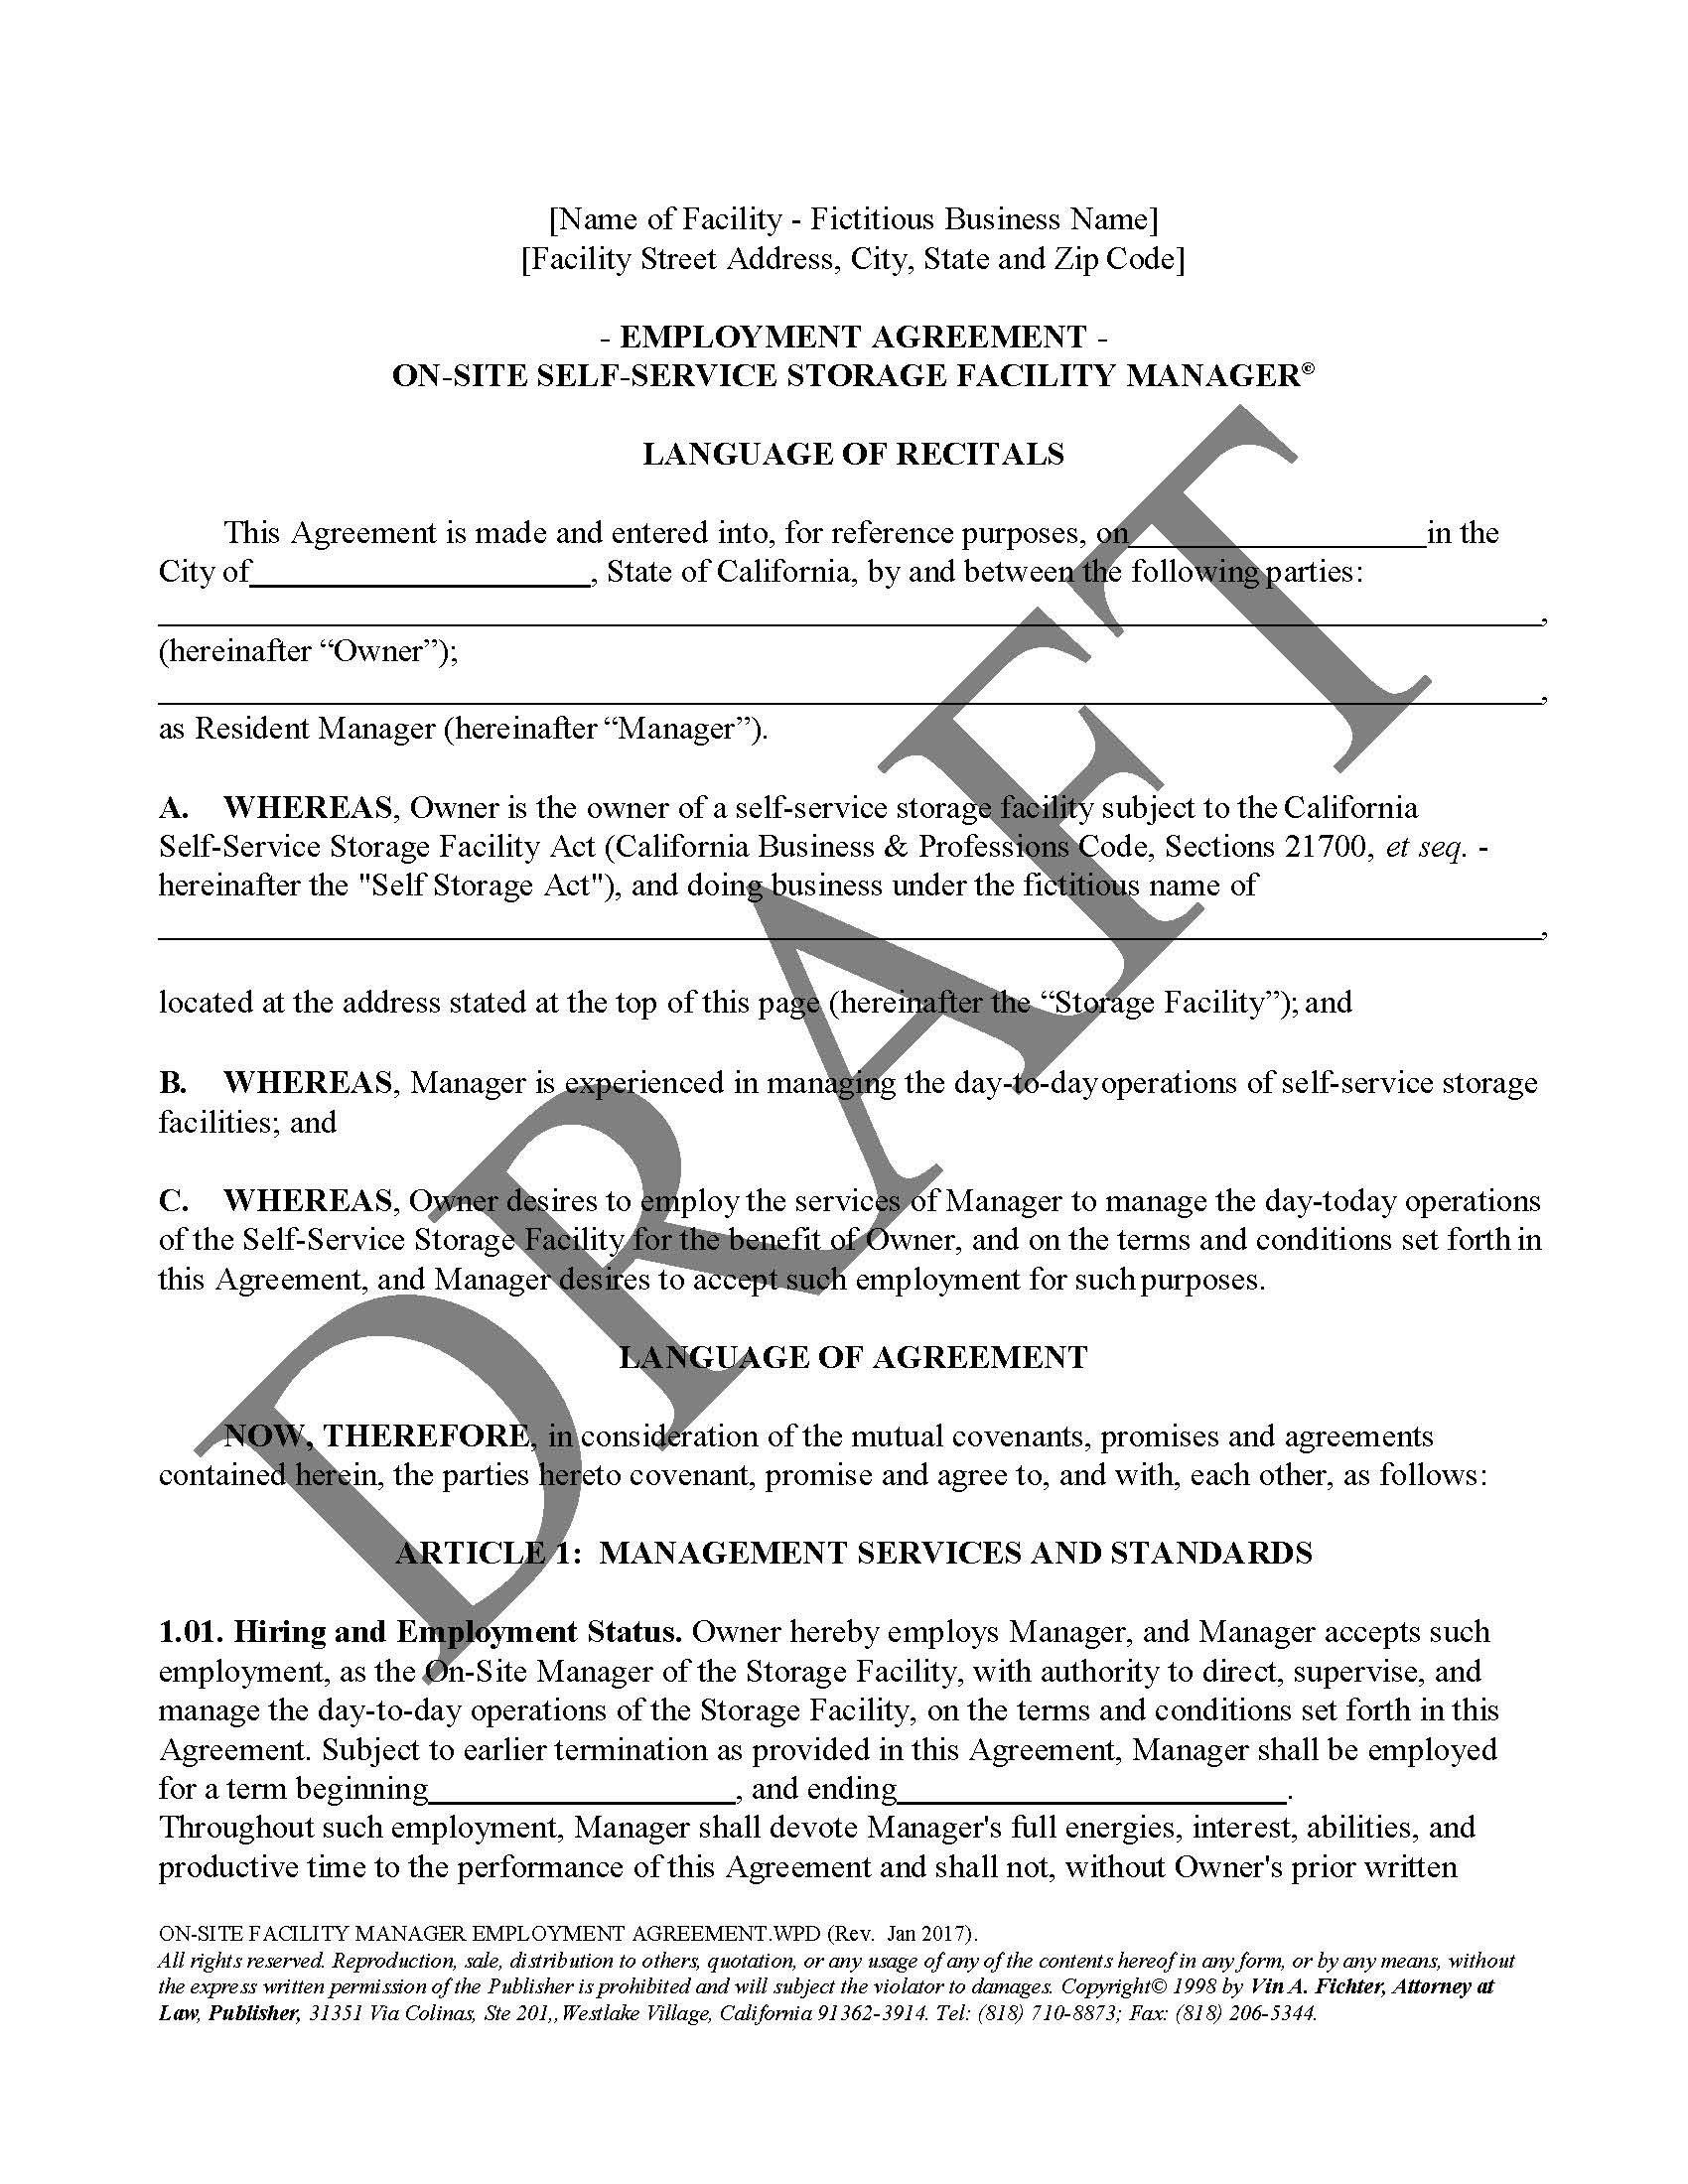 On Site Facility Manager Employment Agreement Law Office Of Vin A